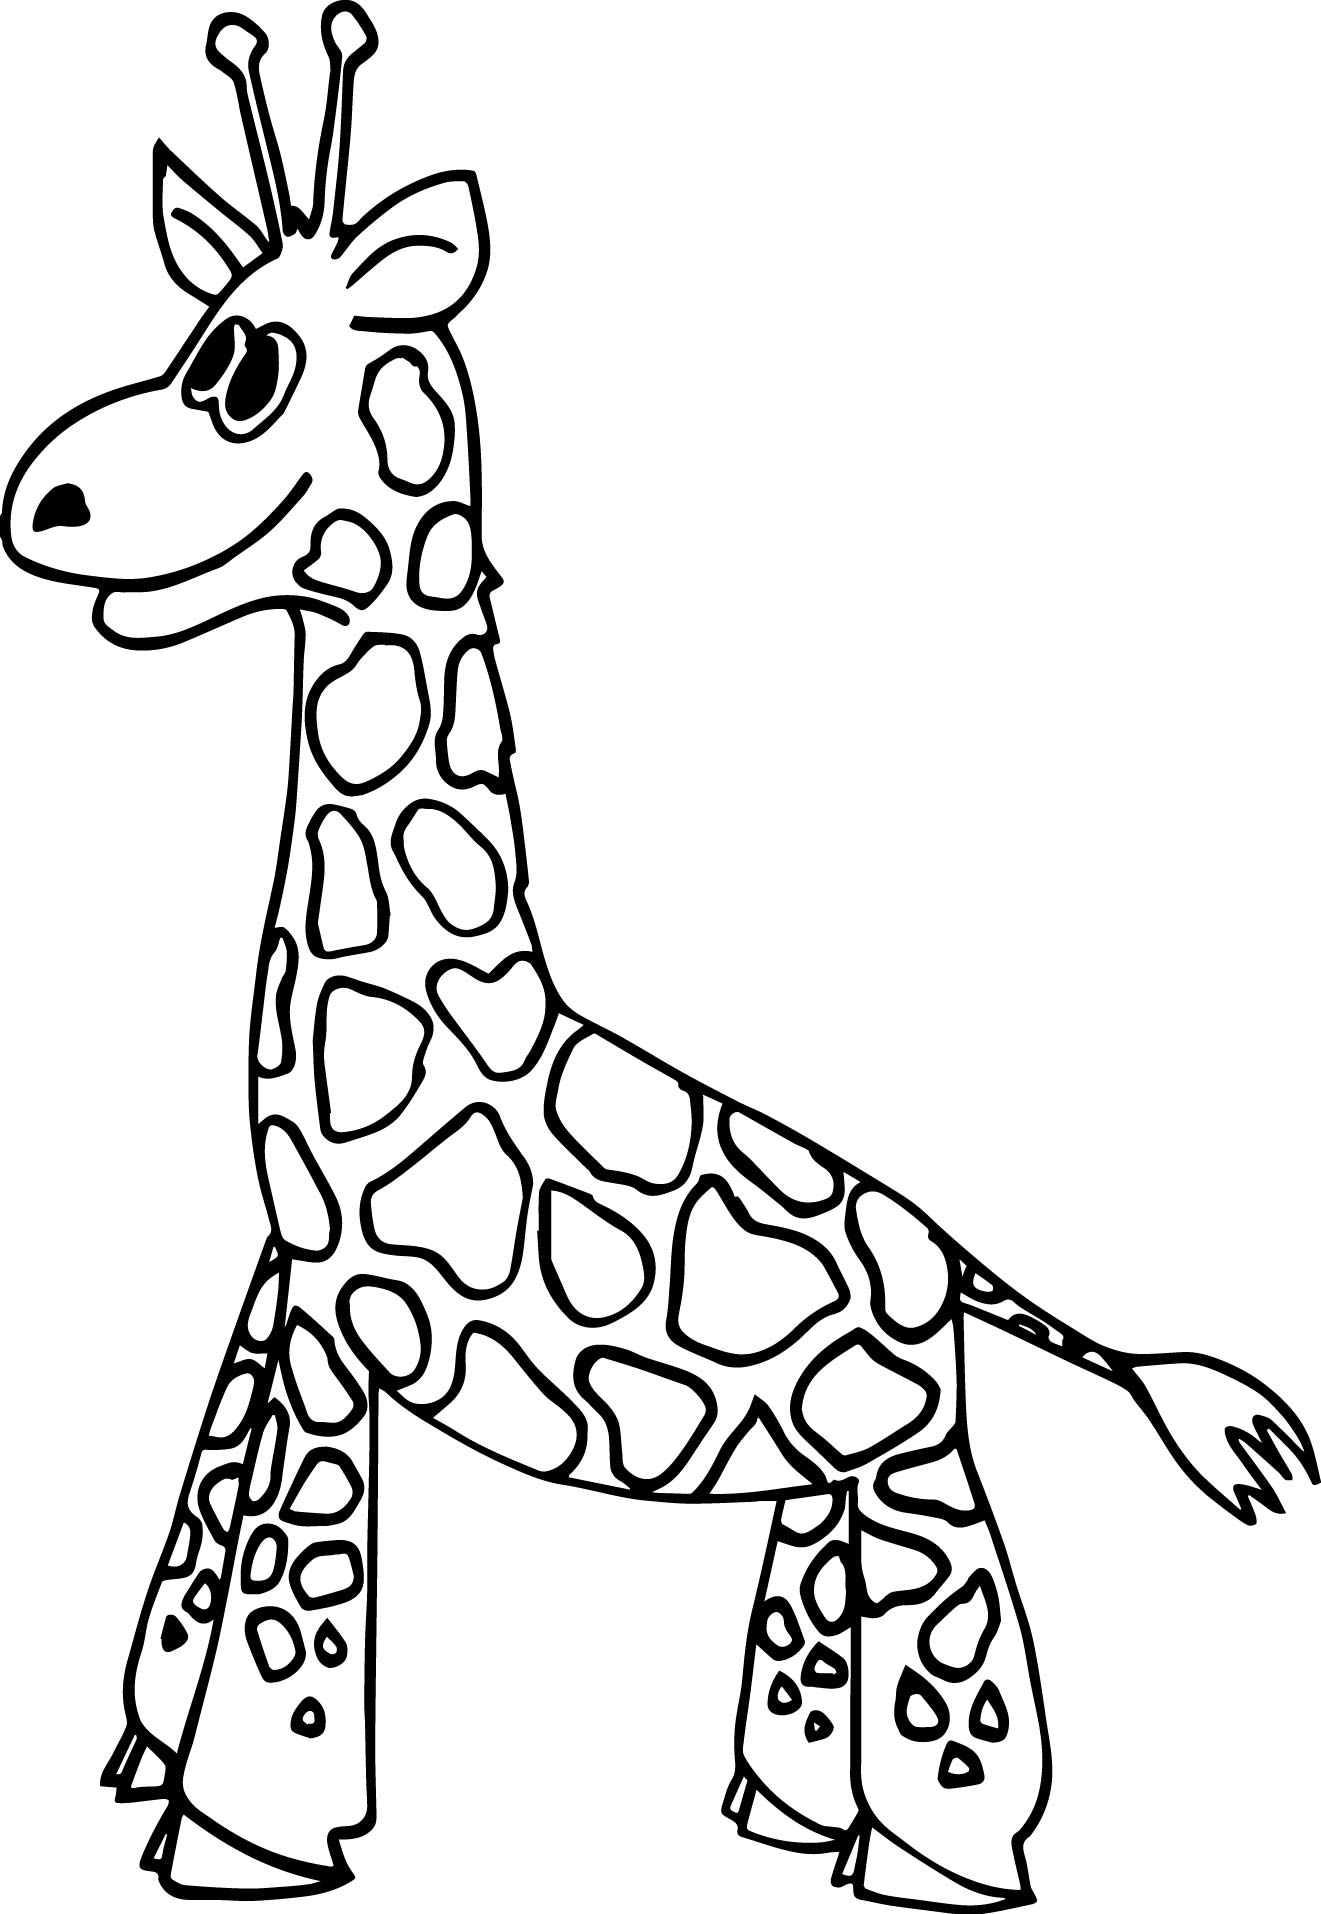 Just Giraffe Coloring Page